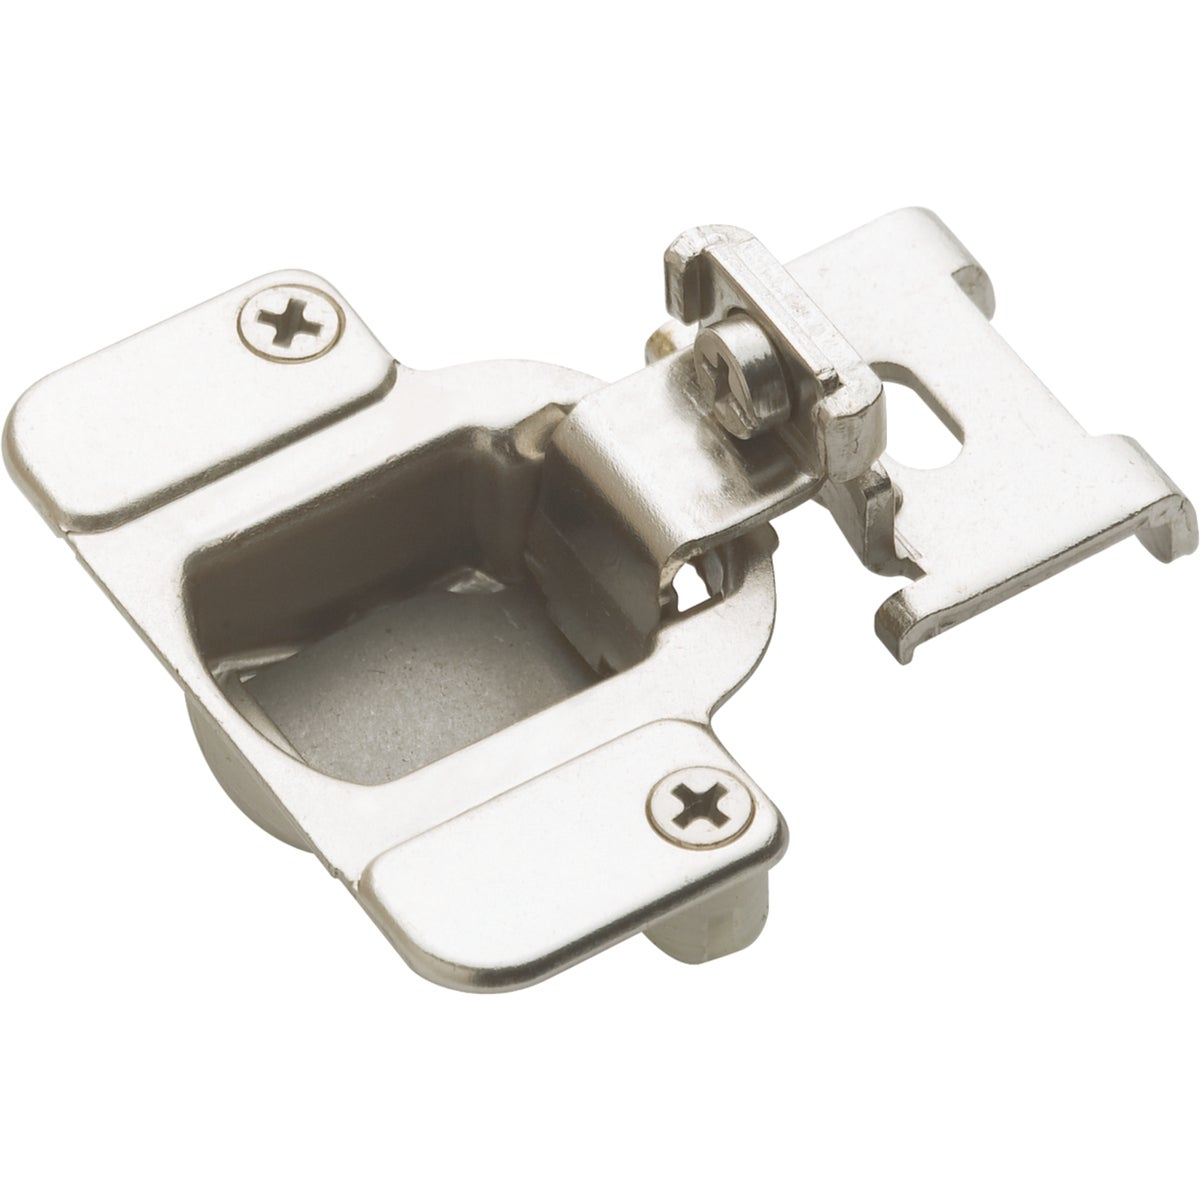 NICKEL CONCEALED HINGE - BP2811I12-14 by Amerock Corporation